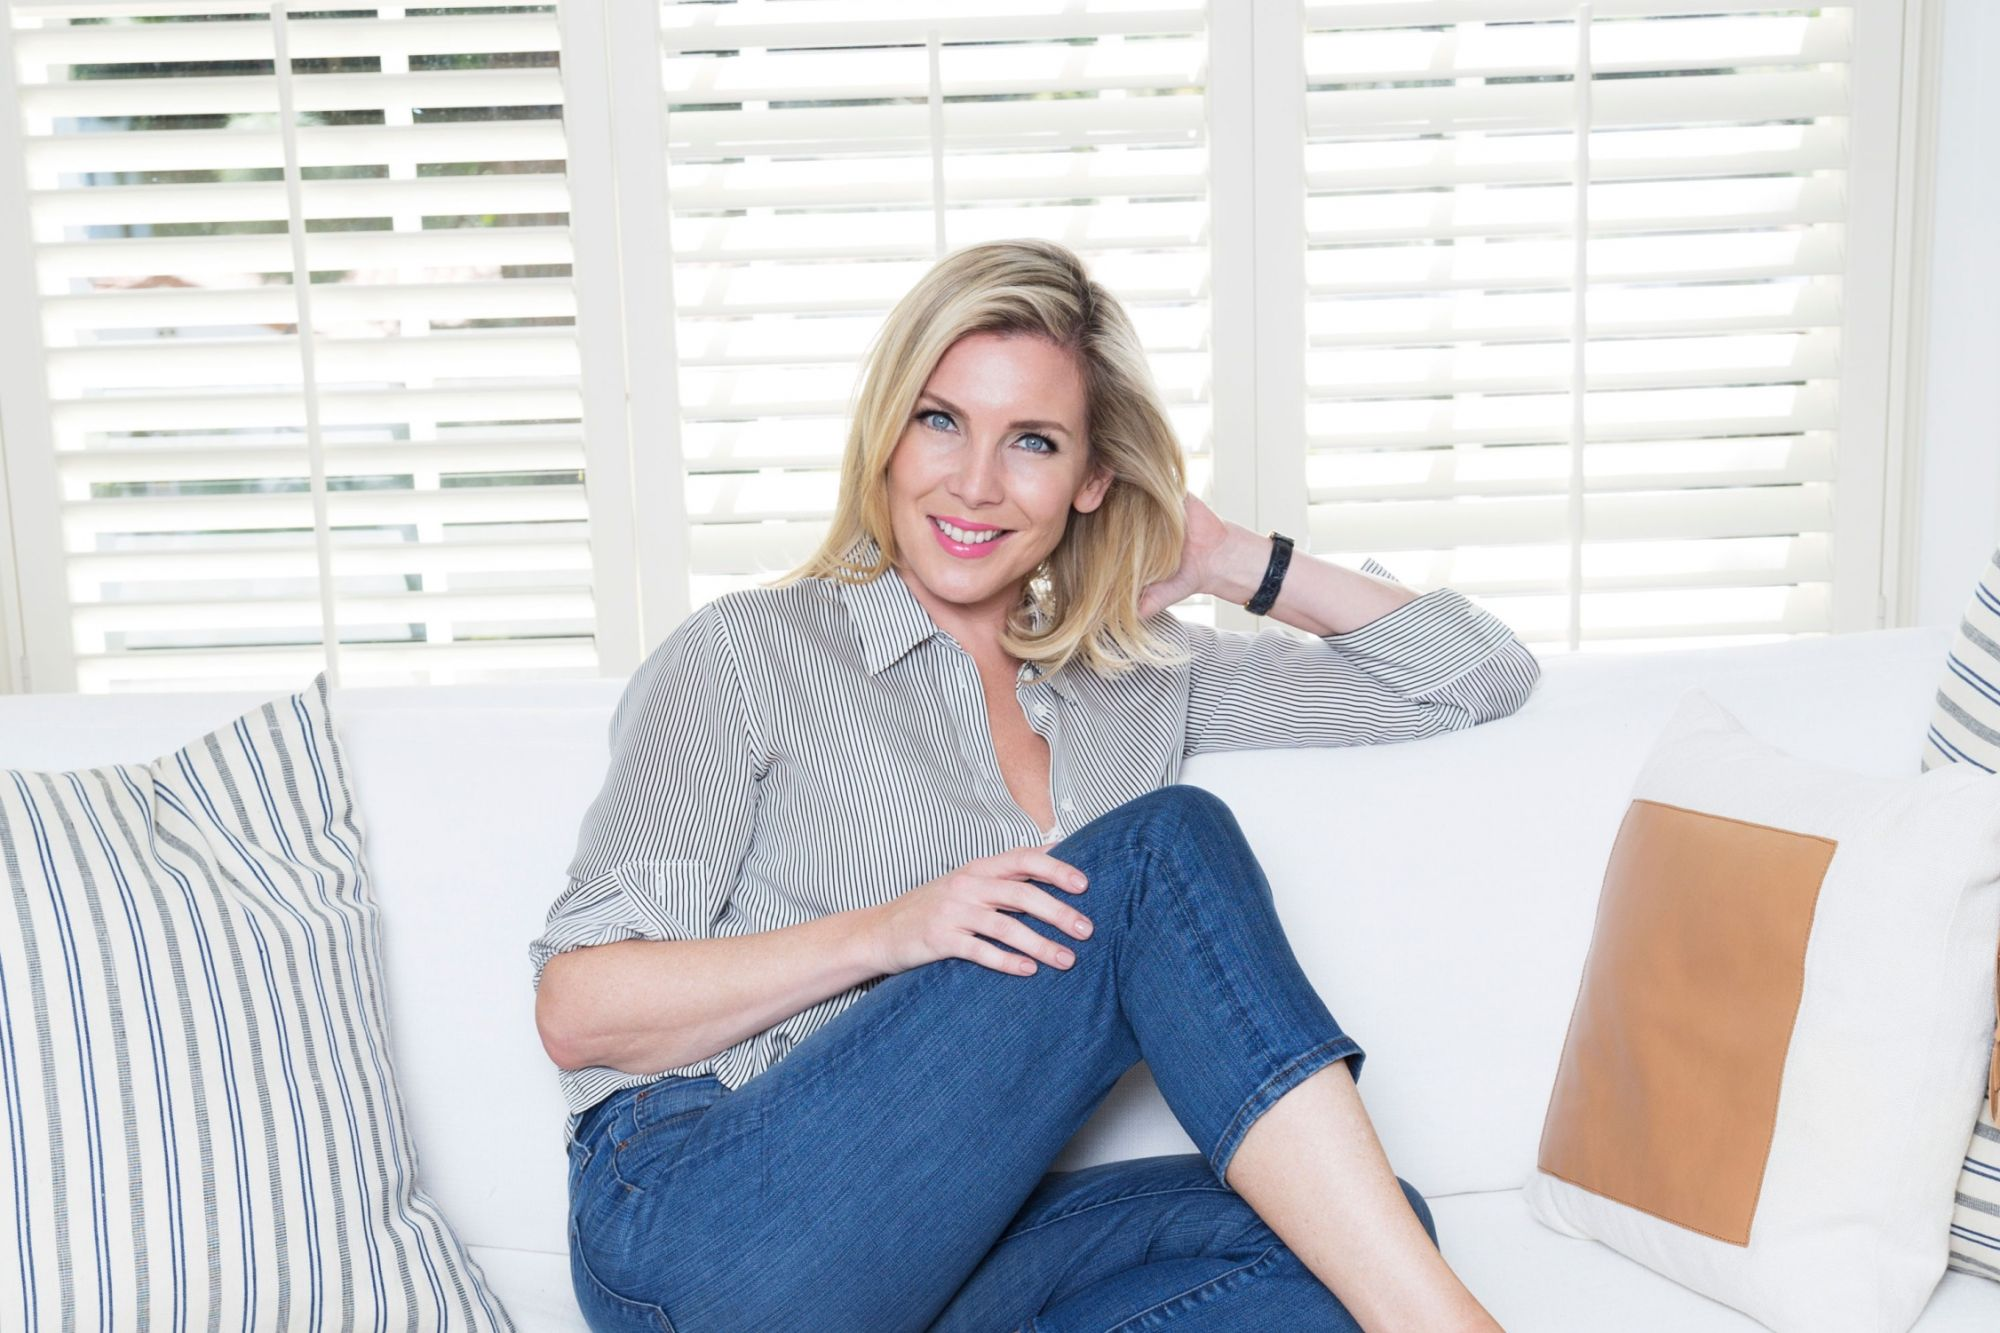 This Entrepreneur Stars in a Hit Network Series, but Her Favorite Role Is Helping Mothers 'Have It All'